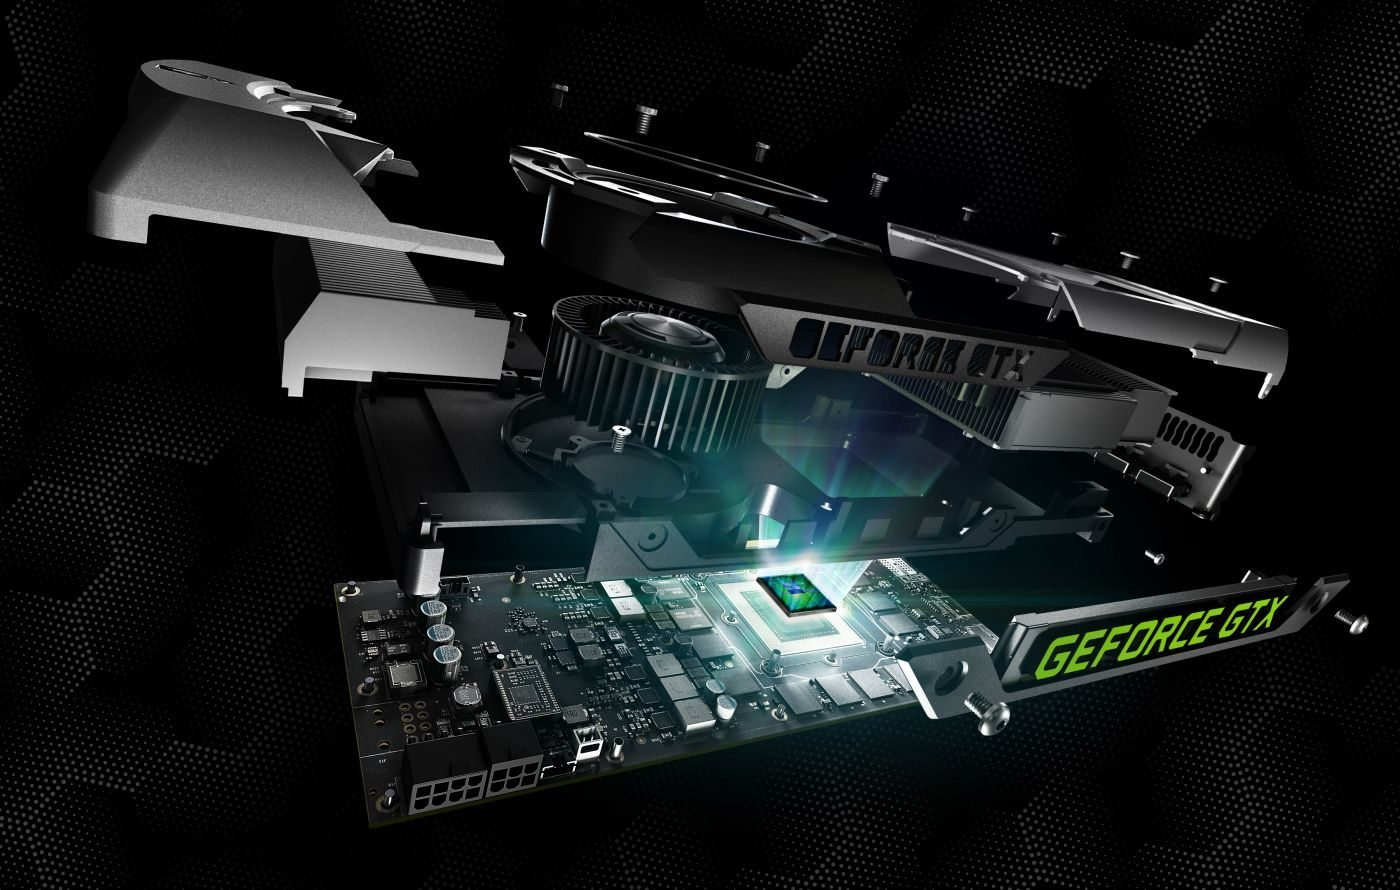 GeForce-GTX-780-Teardown